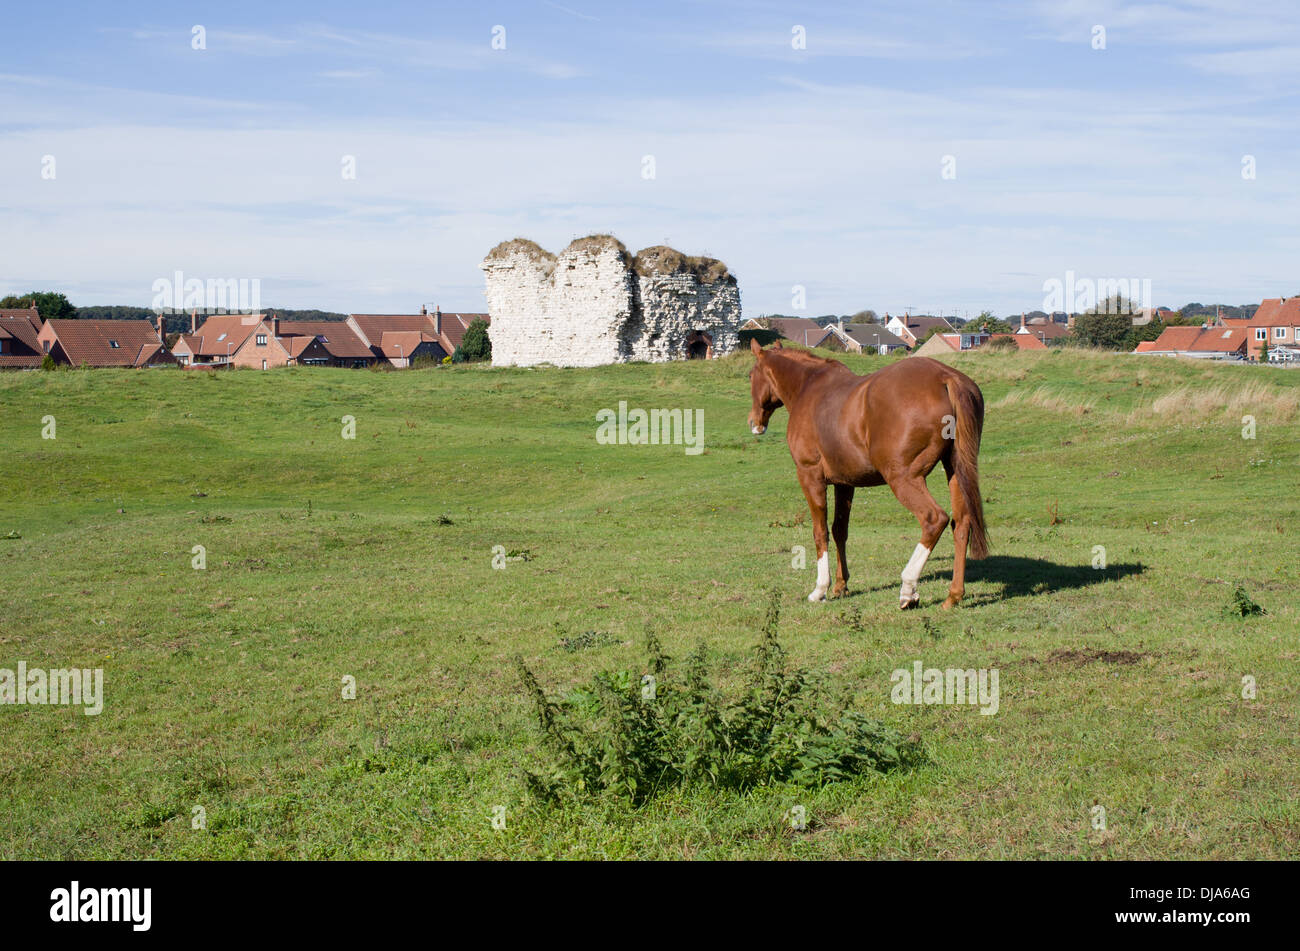 A brown horse walks across a meadow Eat Yorkshire Uk - Stock Image